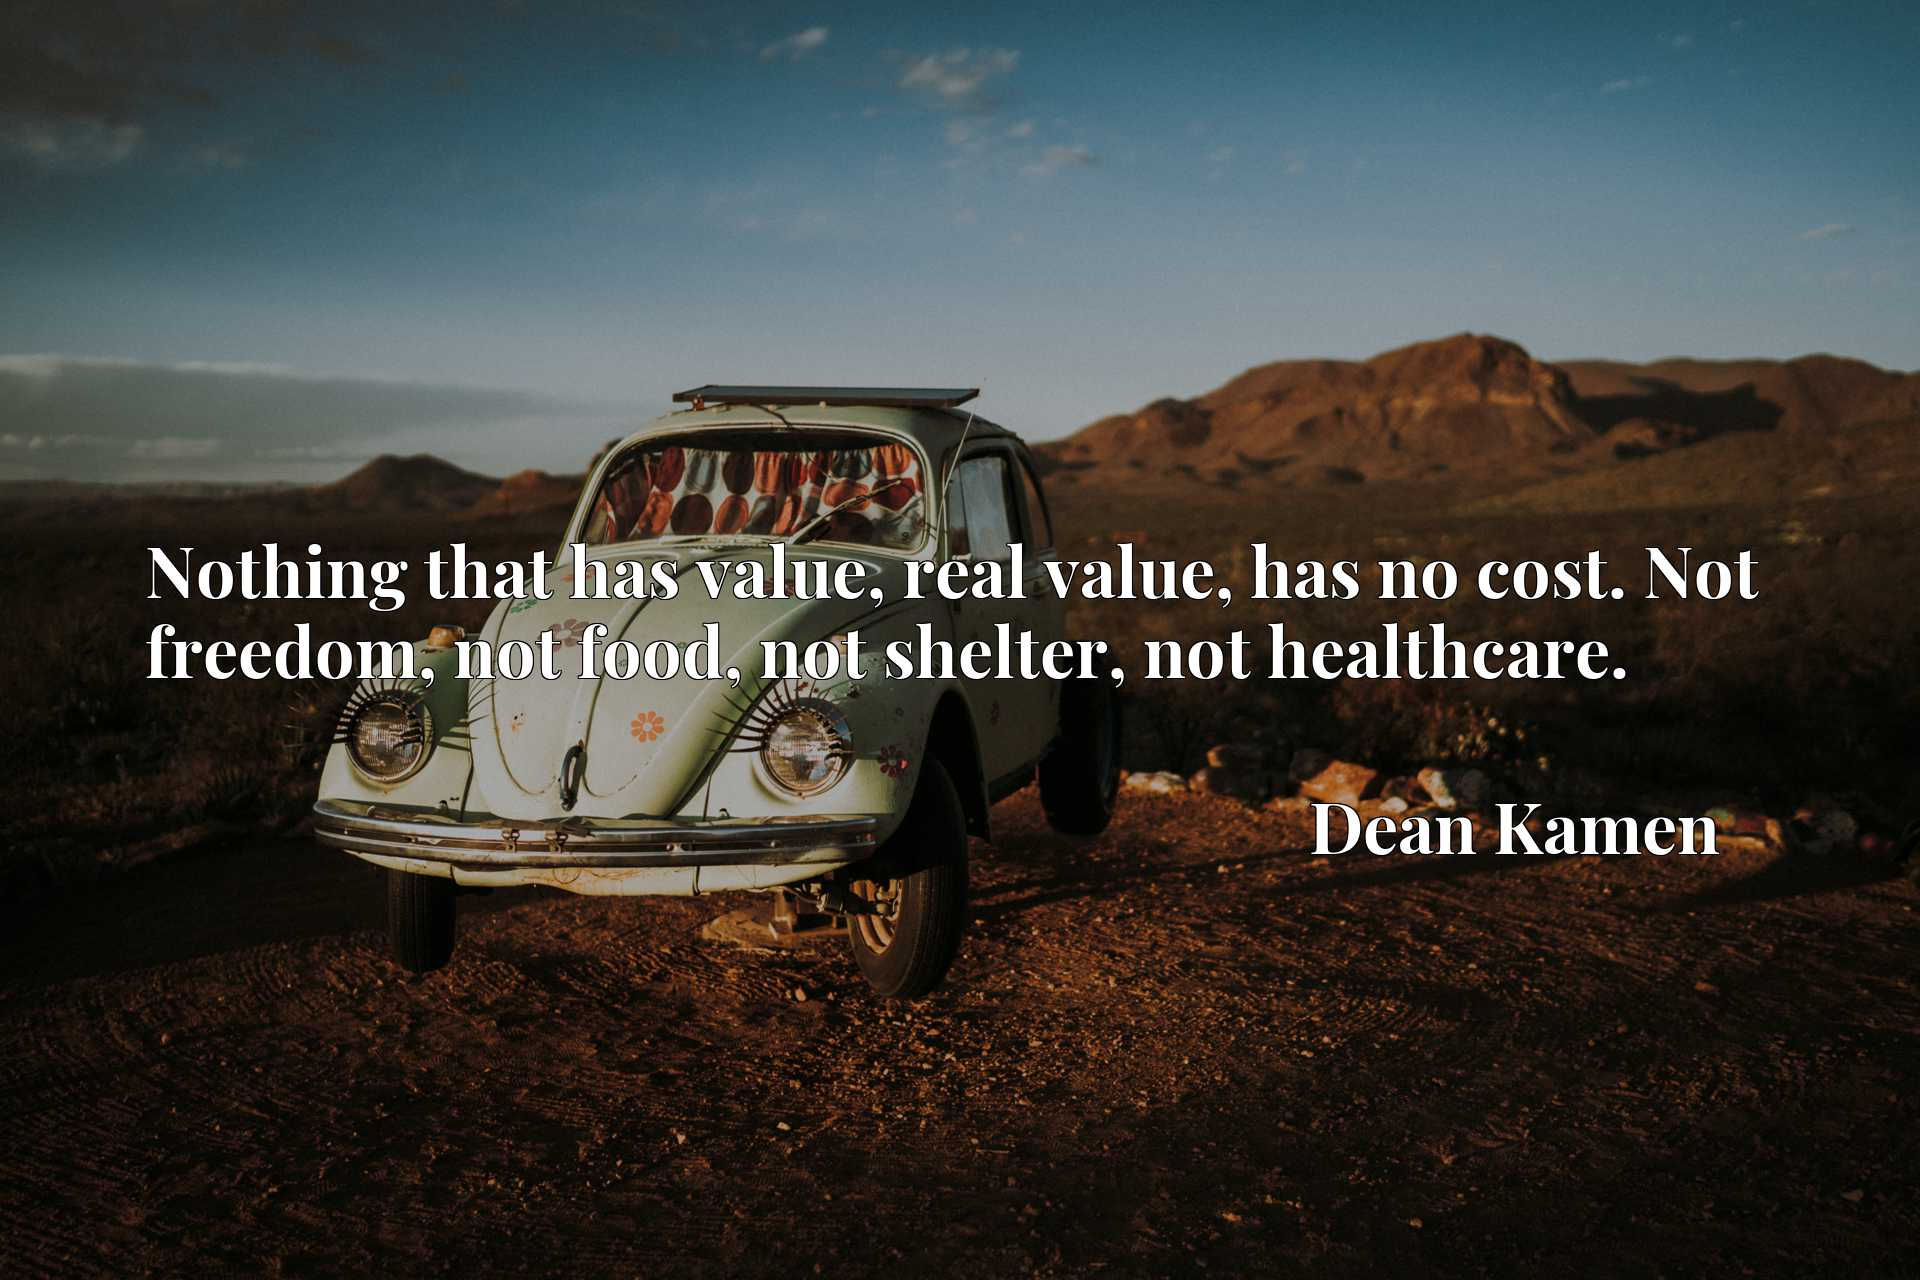 Nothing that has value, real value, has no cost. Not freedom, not food, not shelter, not healthcare.